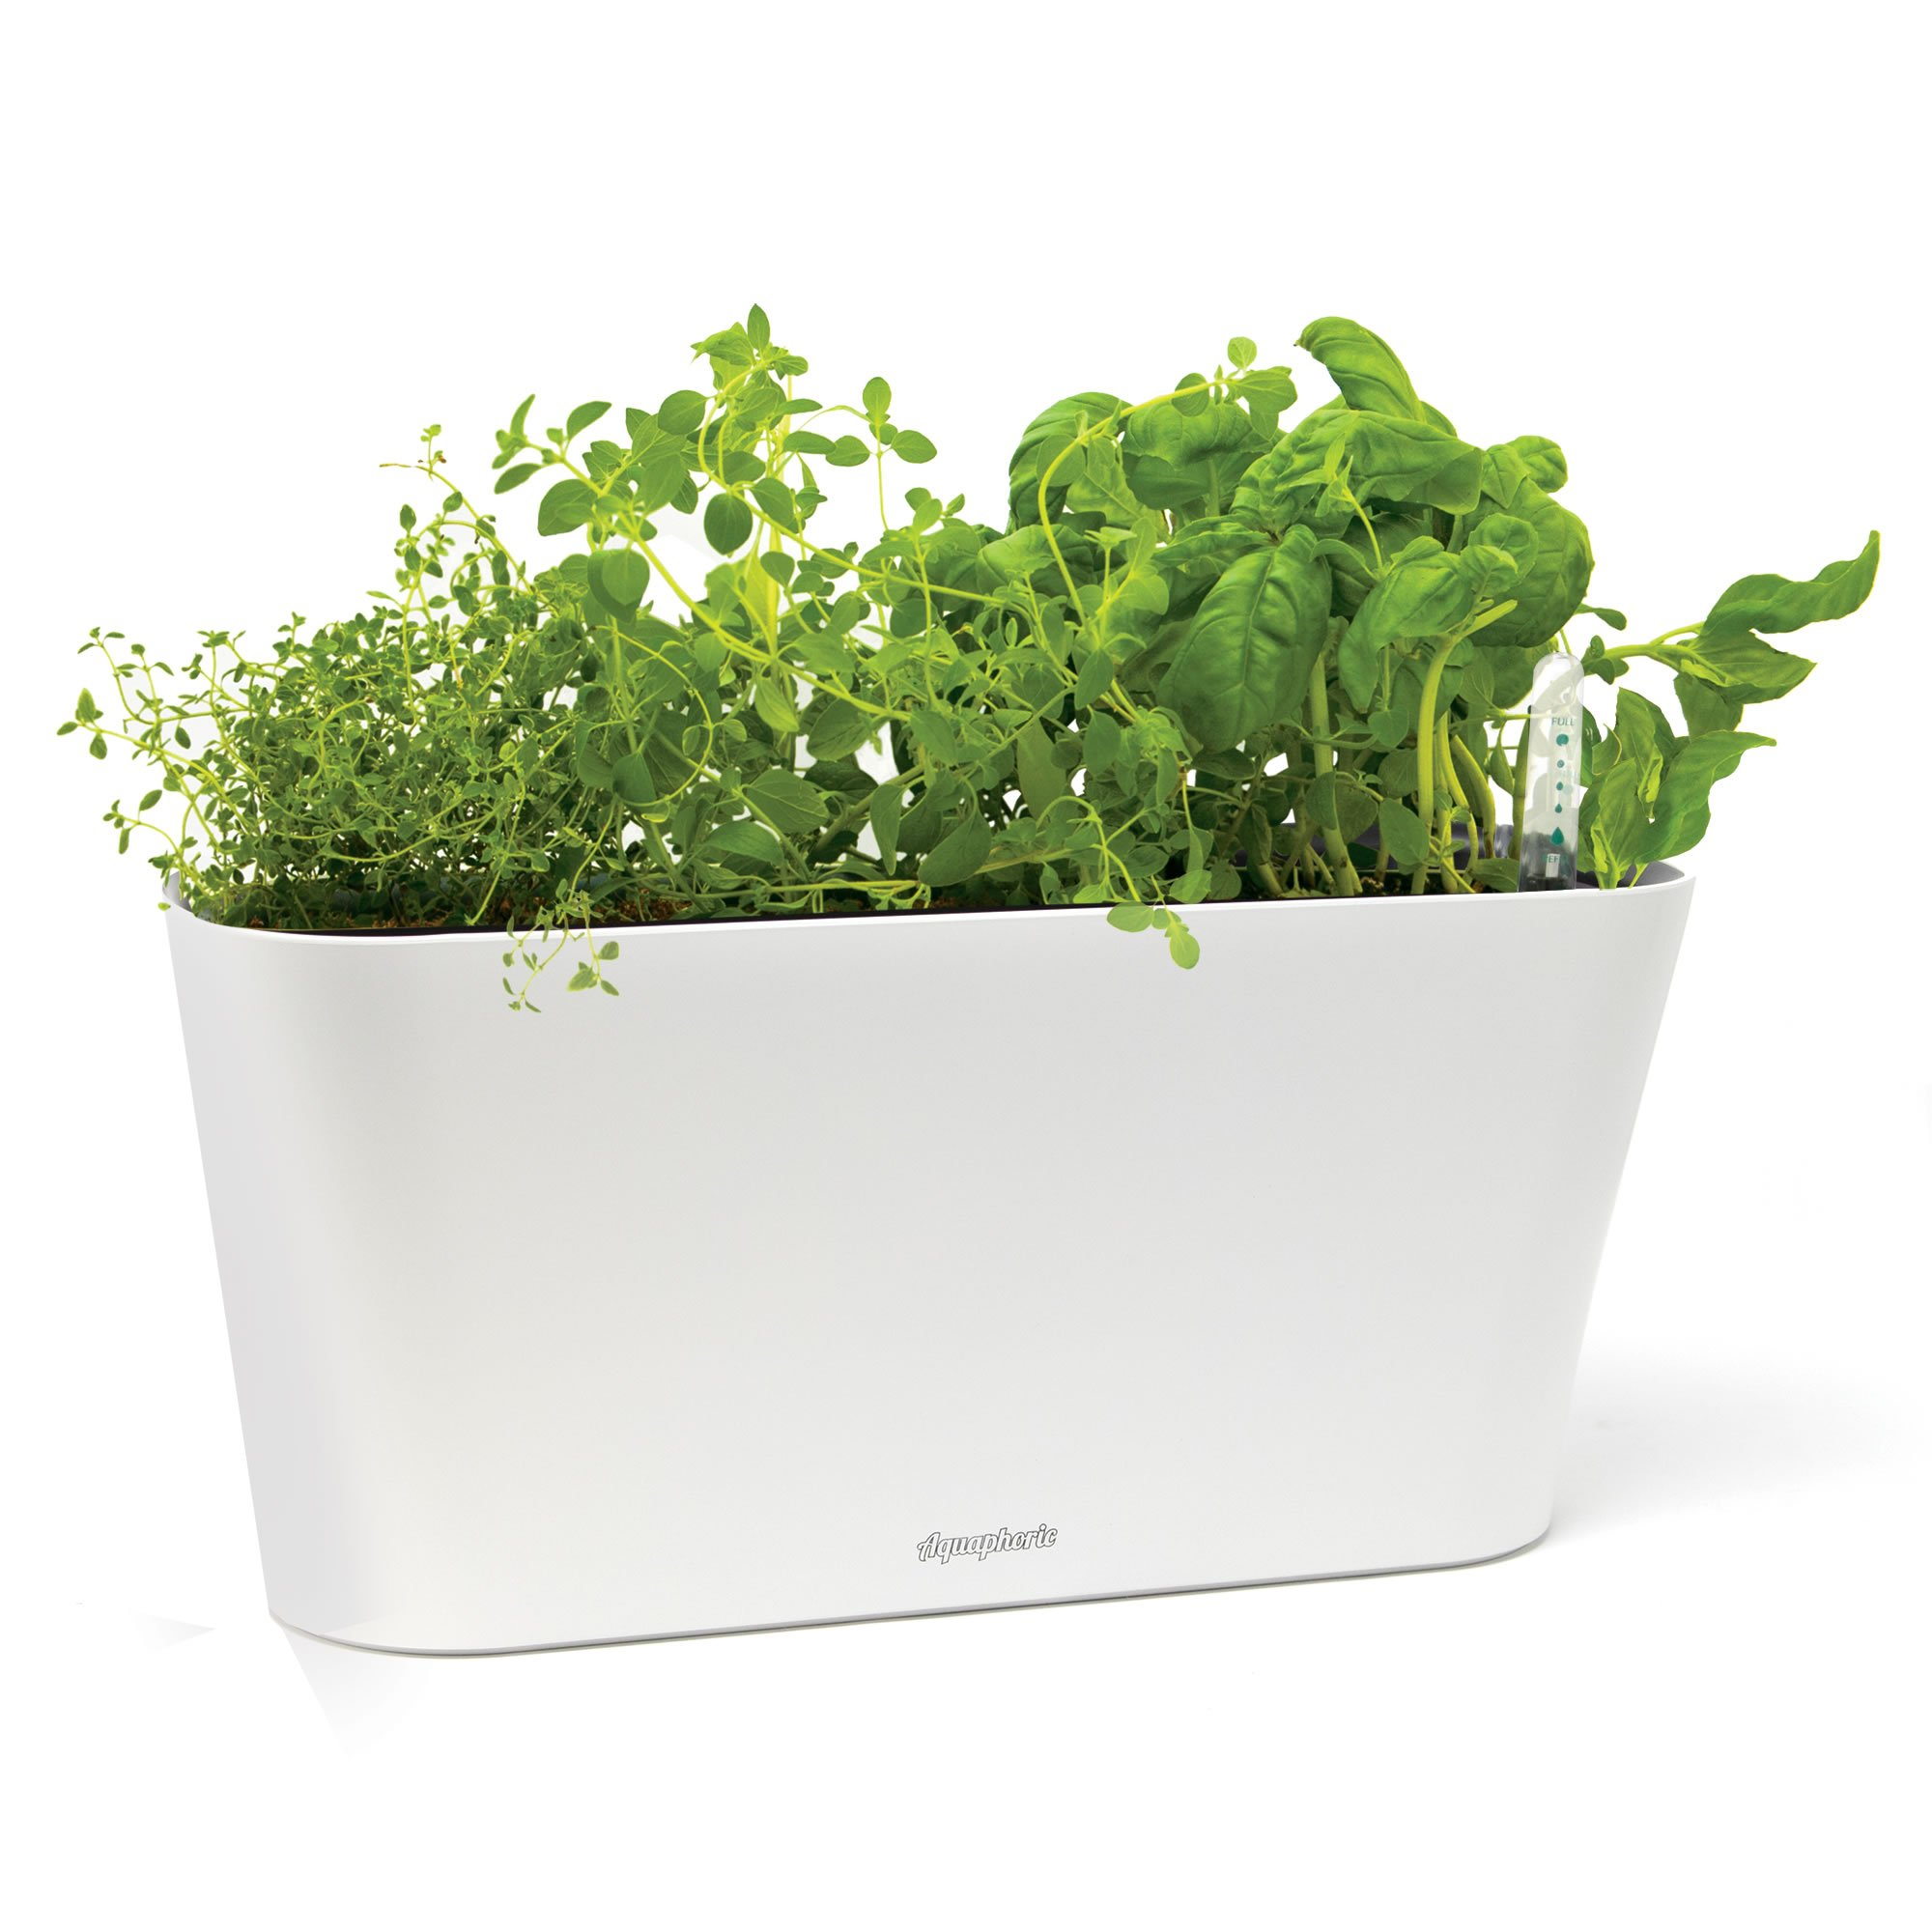 Aquaphoric Herb Garden Tub - Self Watering Passive Hydroponic Planter + Fiber Soil, Keeps Indoor Kitchen Herbs Fresh and Growing for Weeks on Your Home Windowsill. Compact, Attractive and Foolproof. by Window Garden